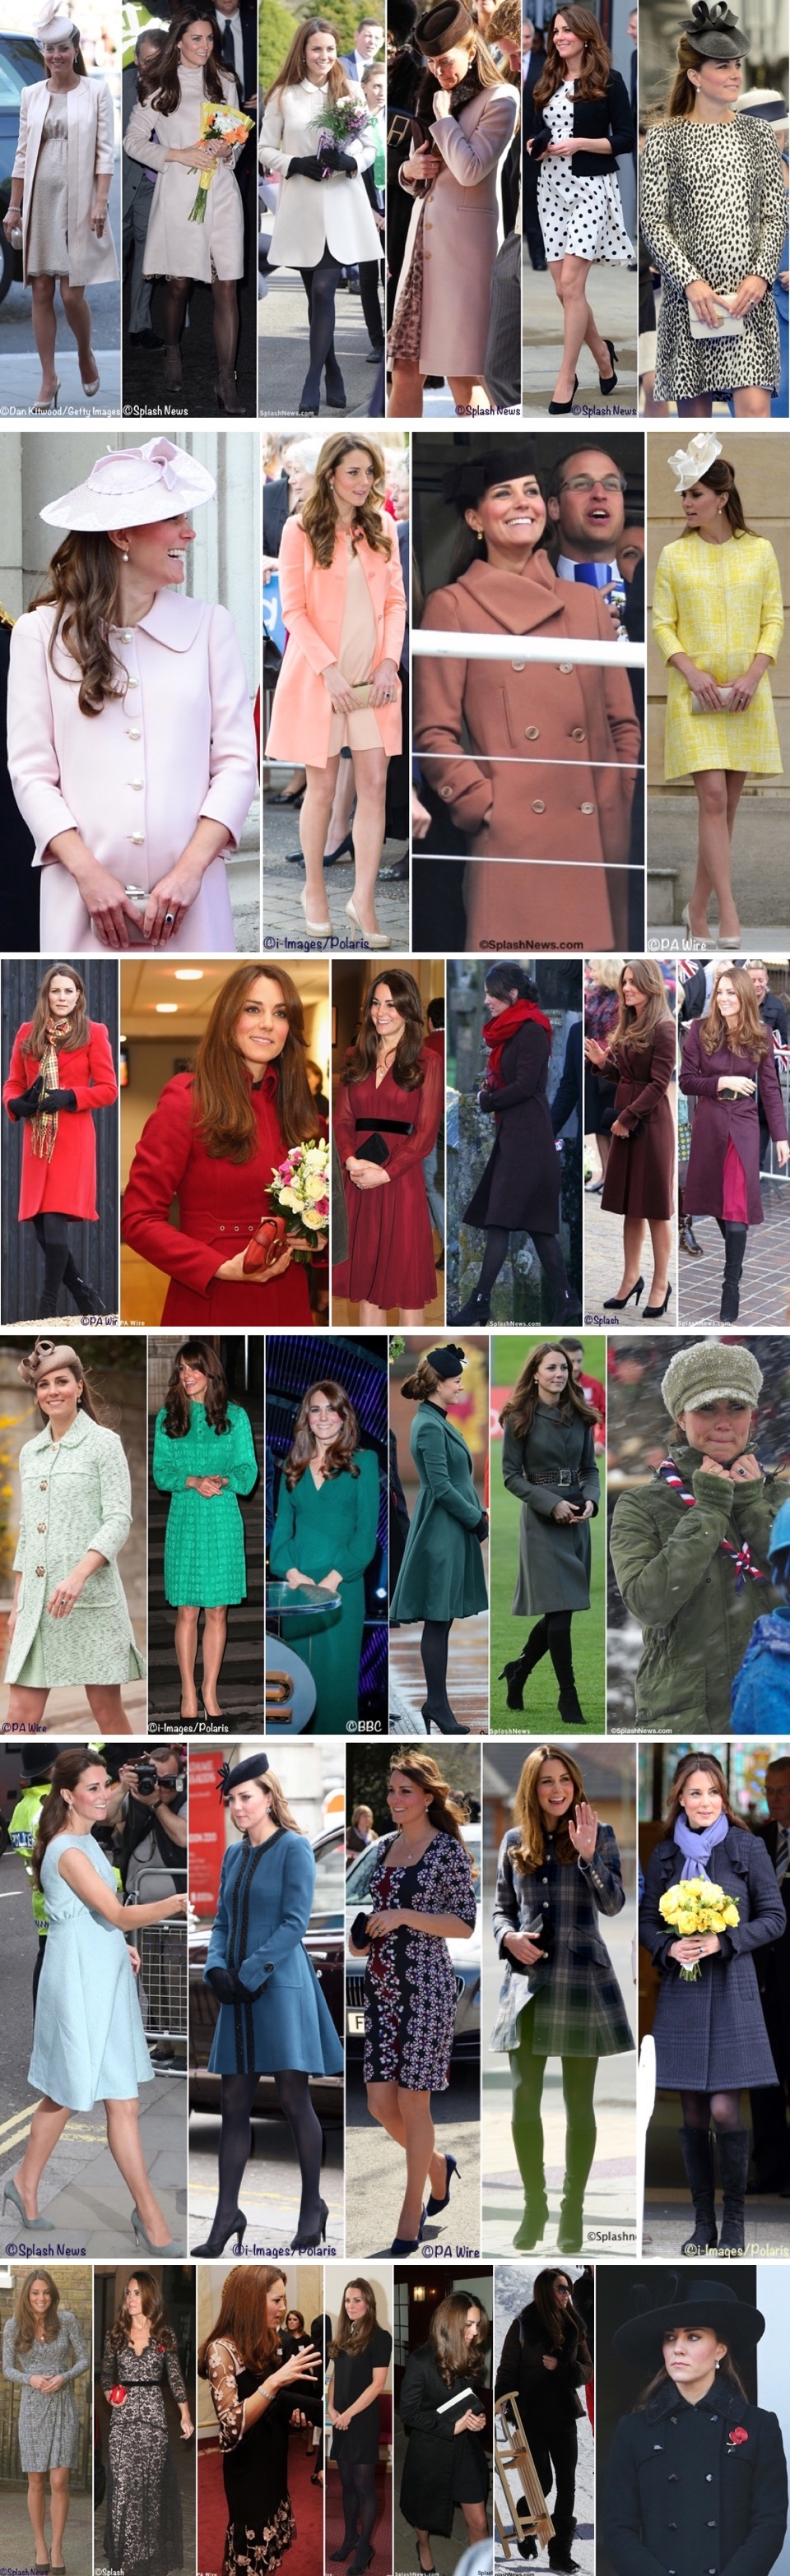 eda3123a86d2e And one more trip down memory lane, here are the pieces worn when Kate was  pregnant with Charlotte.